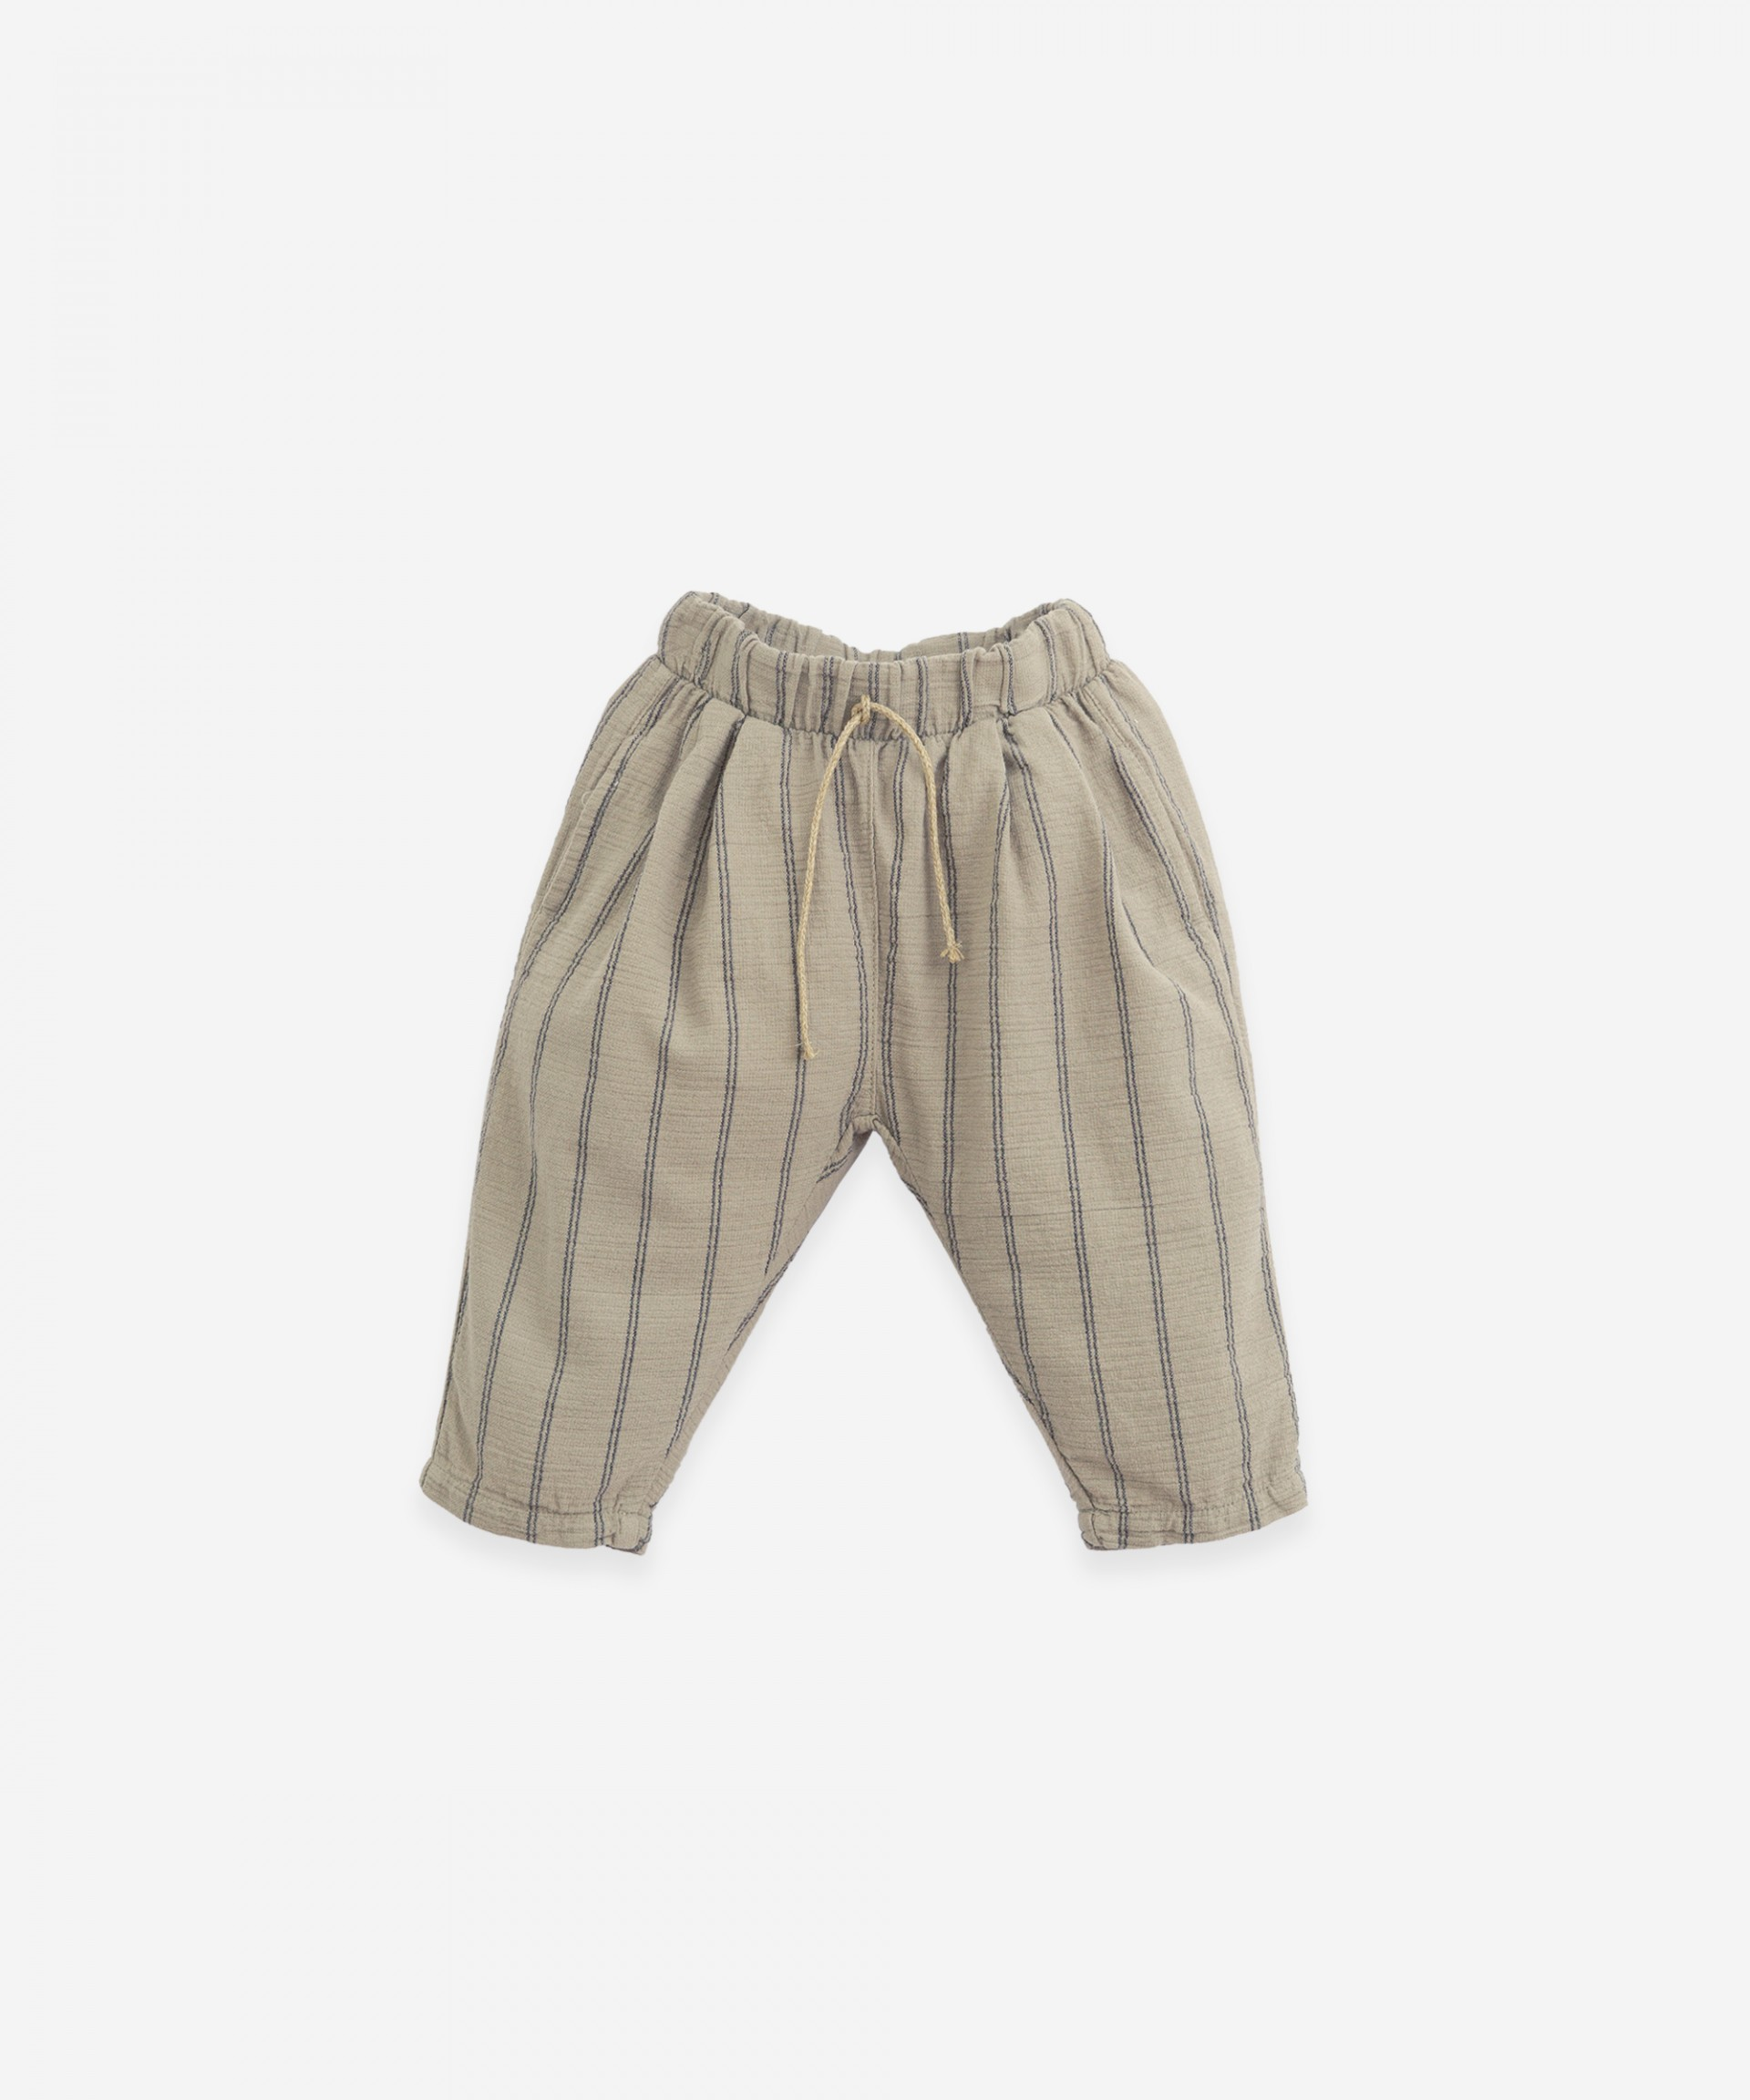 Woven trousers with pockets | Botany